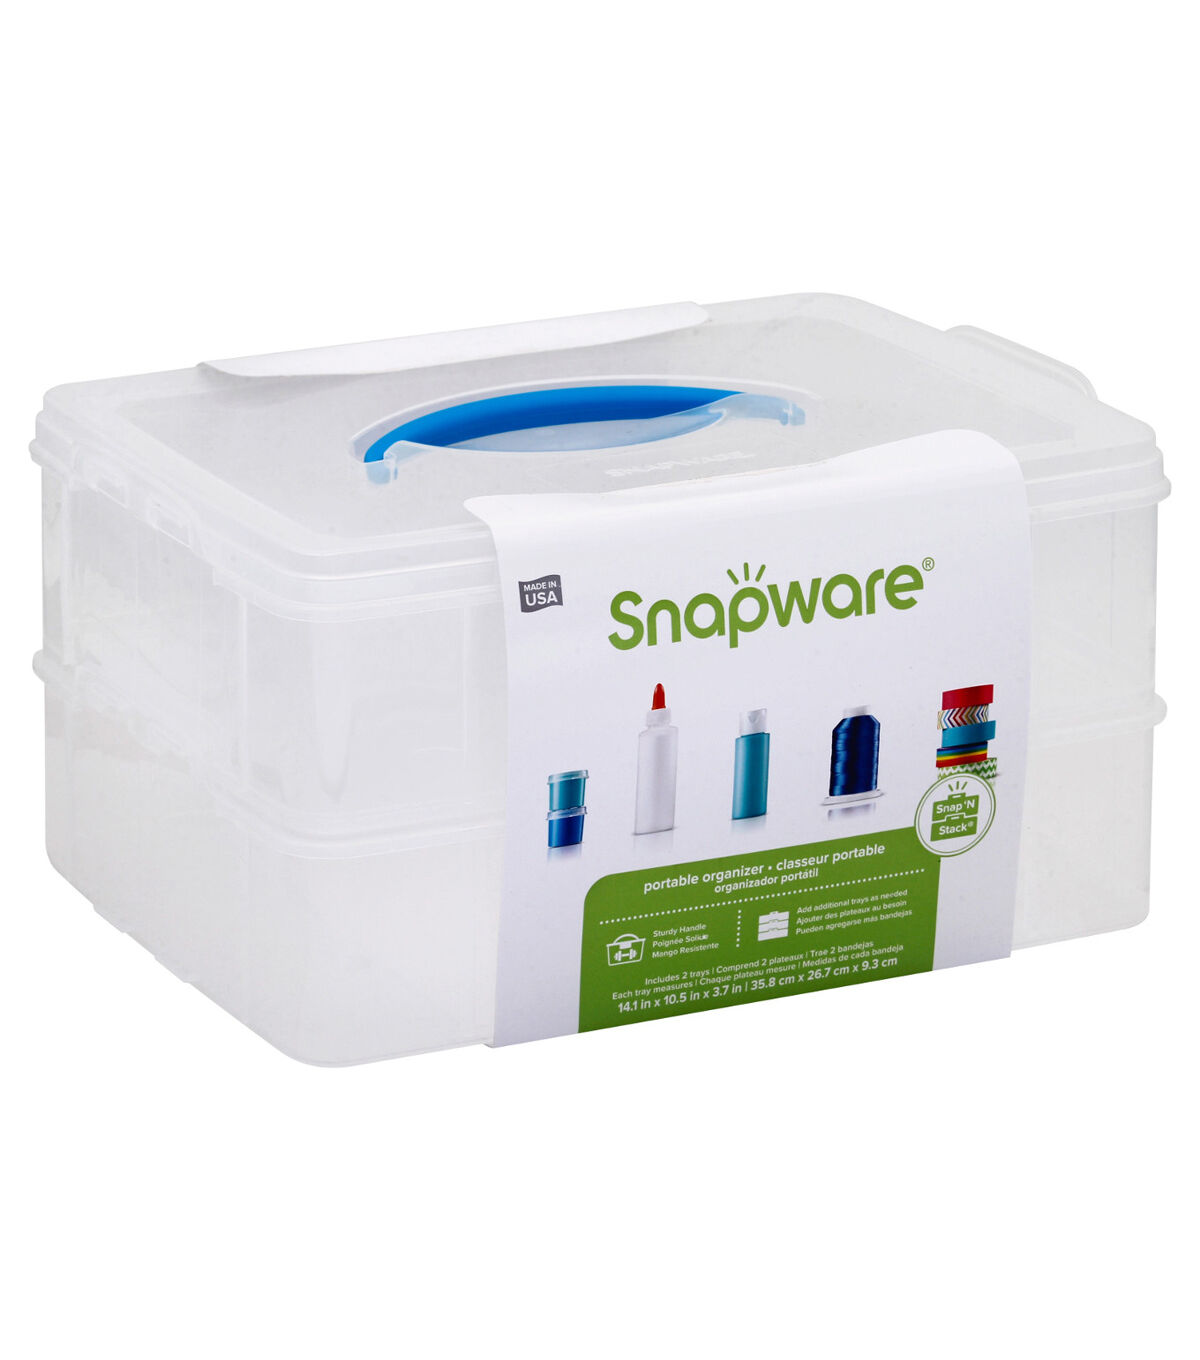 Snapware Snap N Stack 10 x 14 Rectangle with 2 layers  sc 1 st  Joann & Plastic Storage - Plastic Drawers Bins and Boxes | JOANN